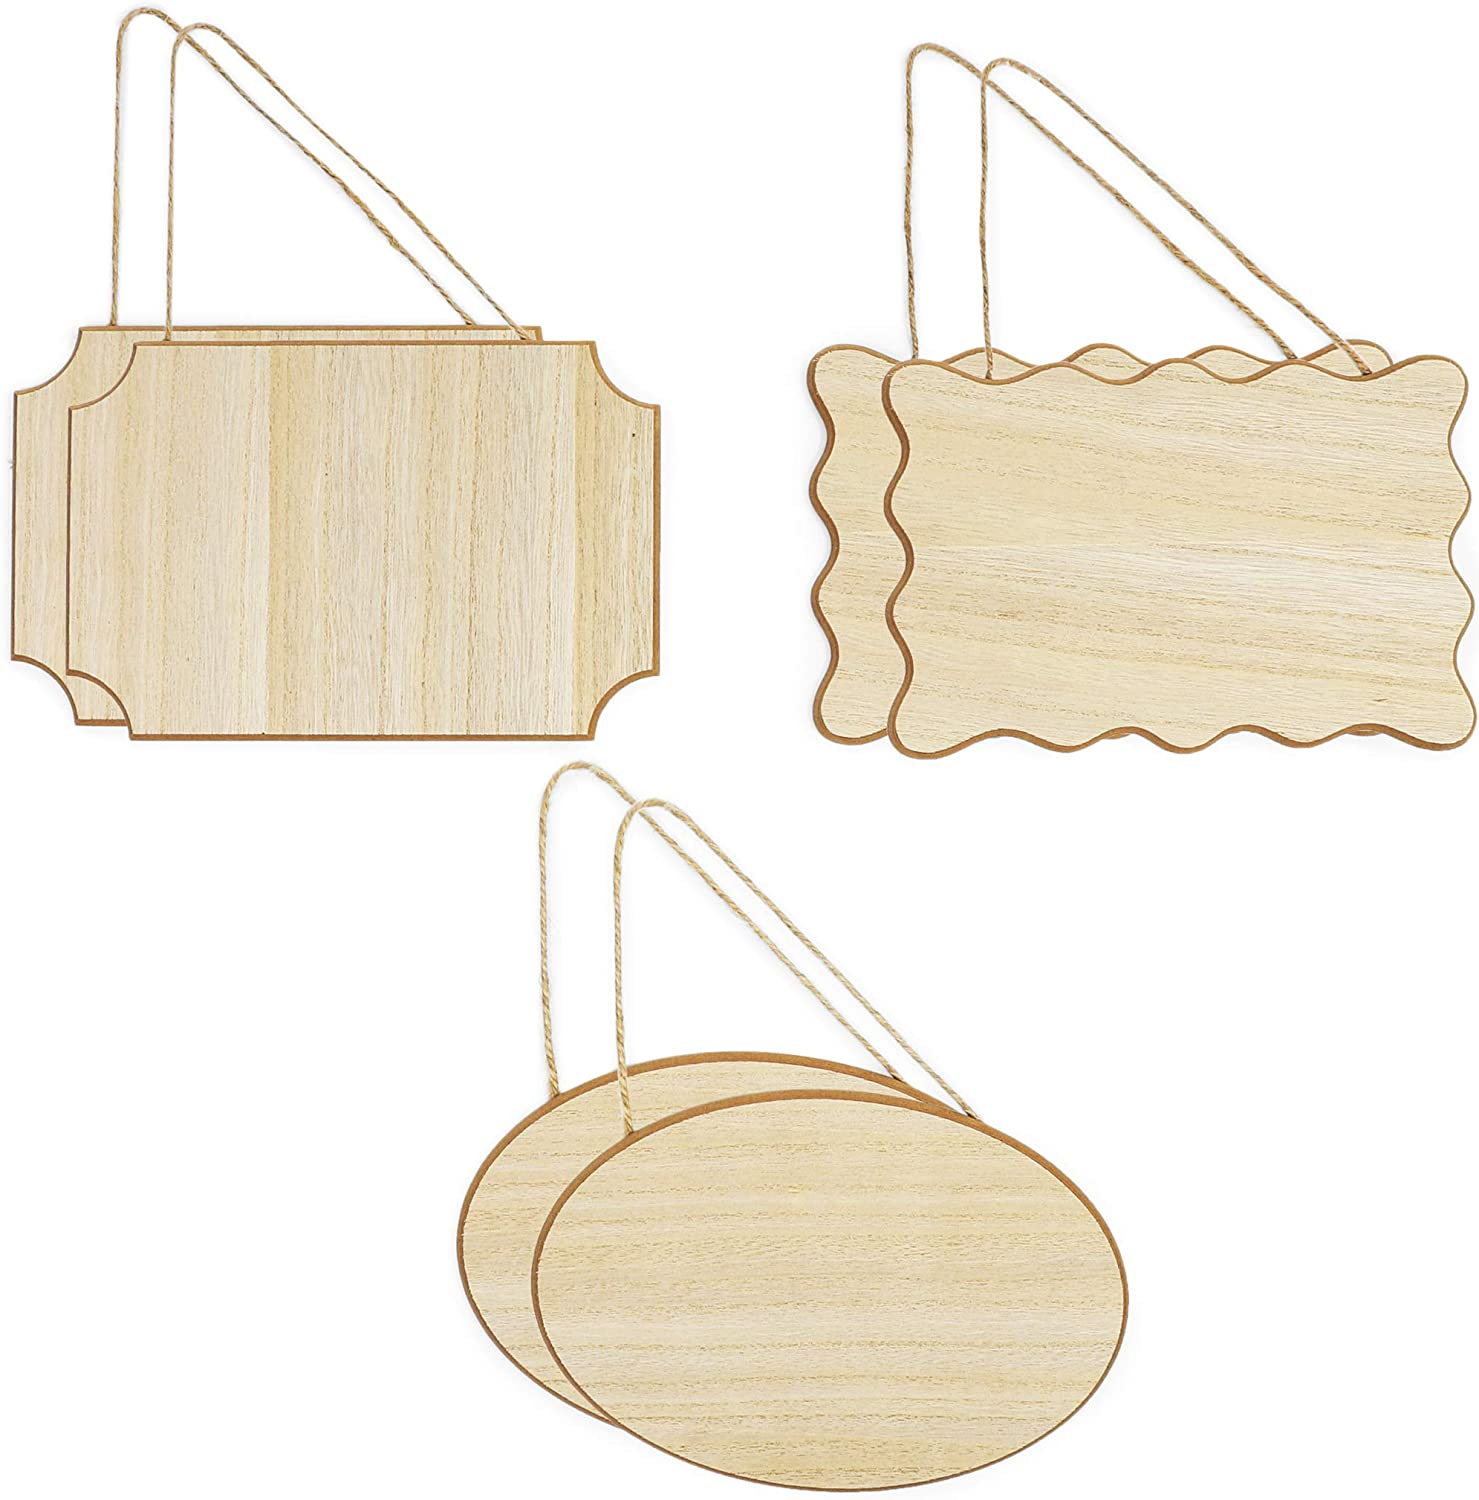 Unfinished Hanging Wood Signs for Crafts (9 x 6 x 0.25 in, 3 Shapes, 6 Pack)